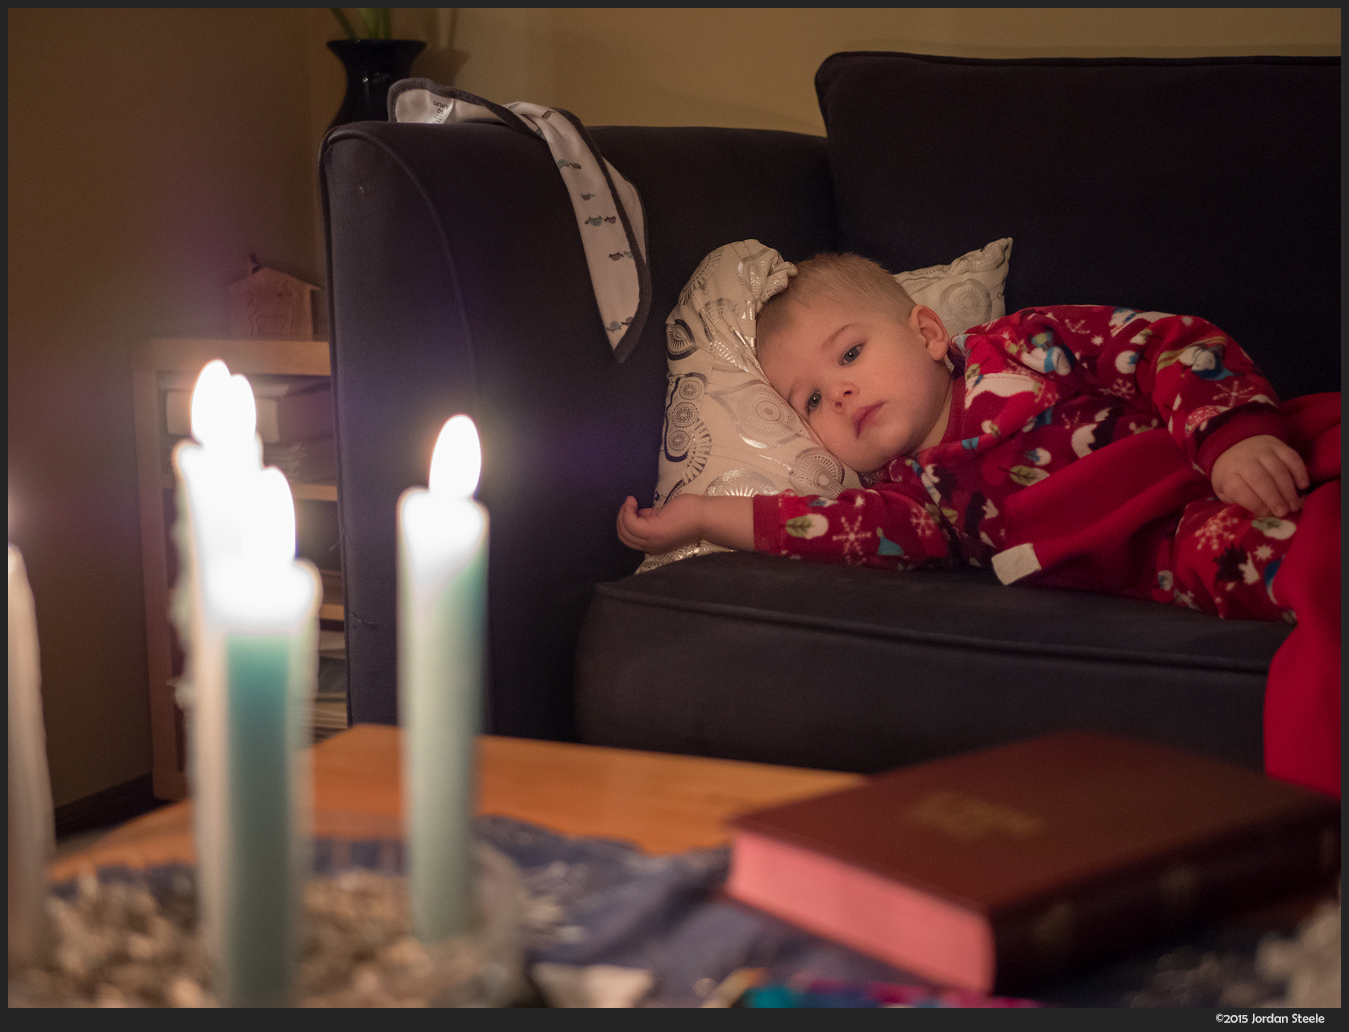 Waiting for Santa - Panasonic GX8 with Panasonic 25mm f/1.7 @ f/1.7